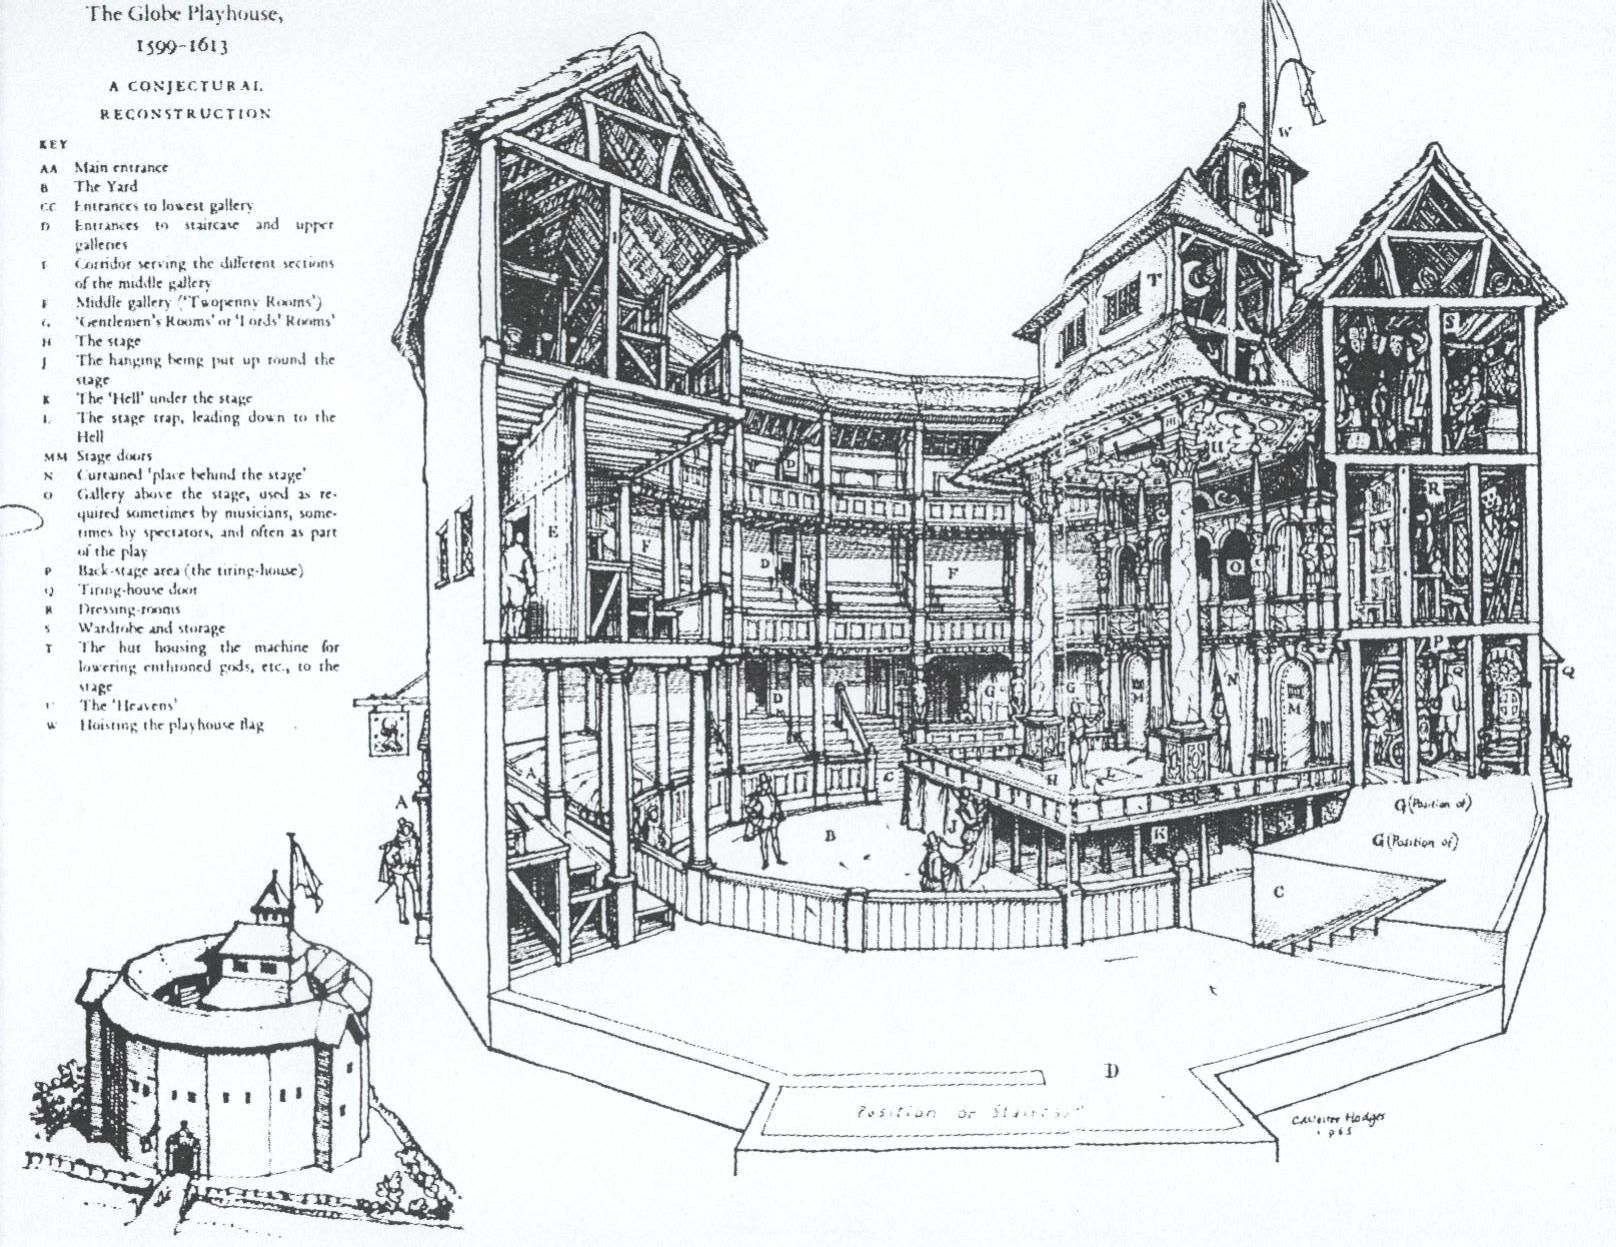 english globe theatre Shakespeare's globe theatre: english heritage - see 7,700 traveller reviews, 2,887 candid photos, and great deals for london, uk, at tripadvisor.